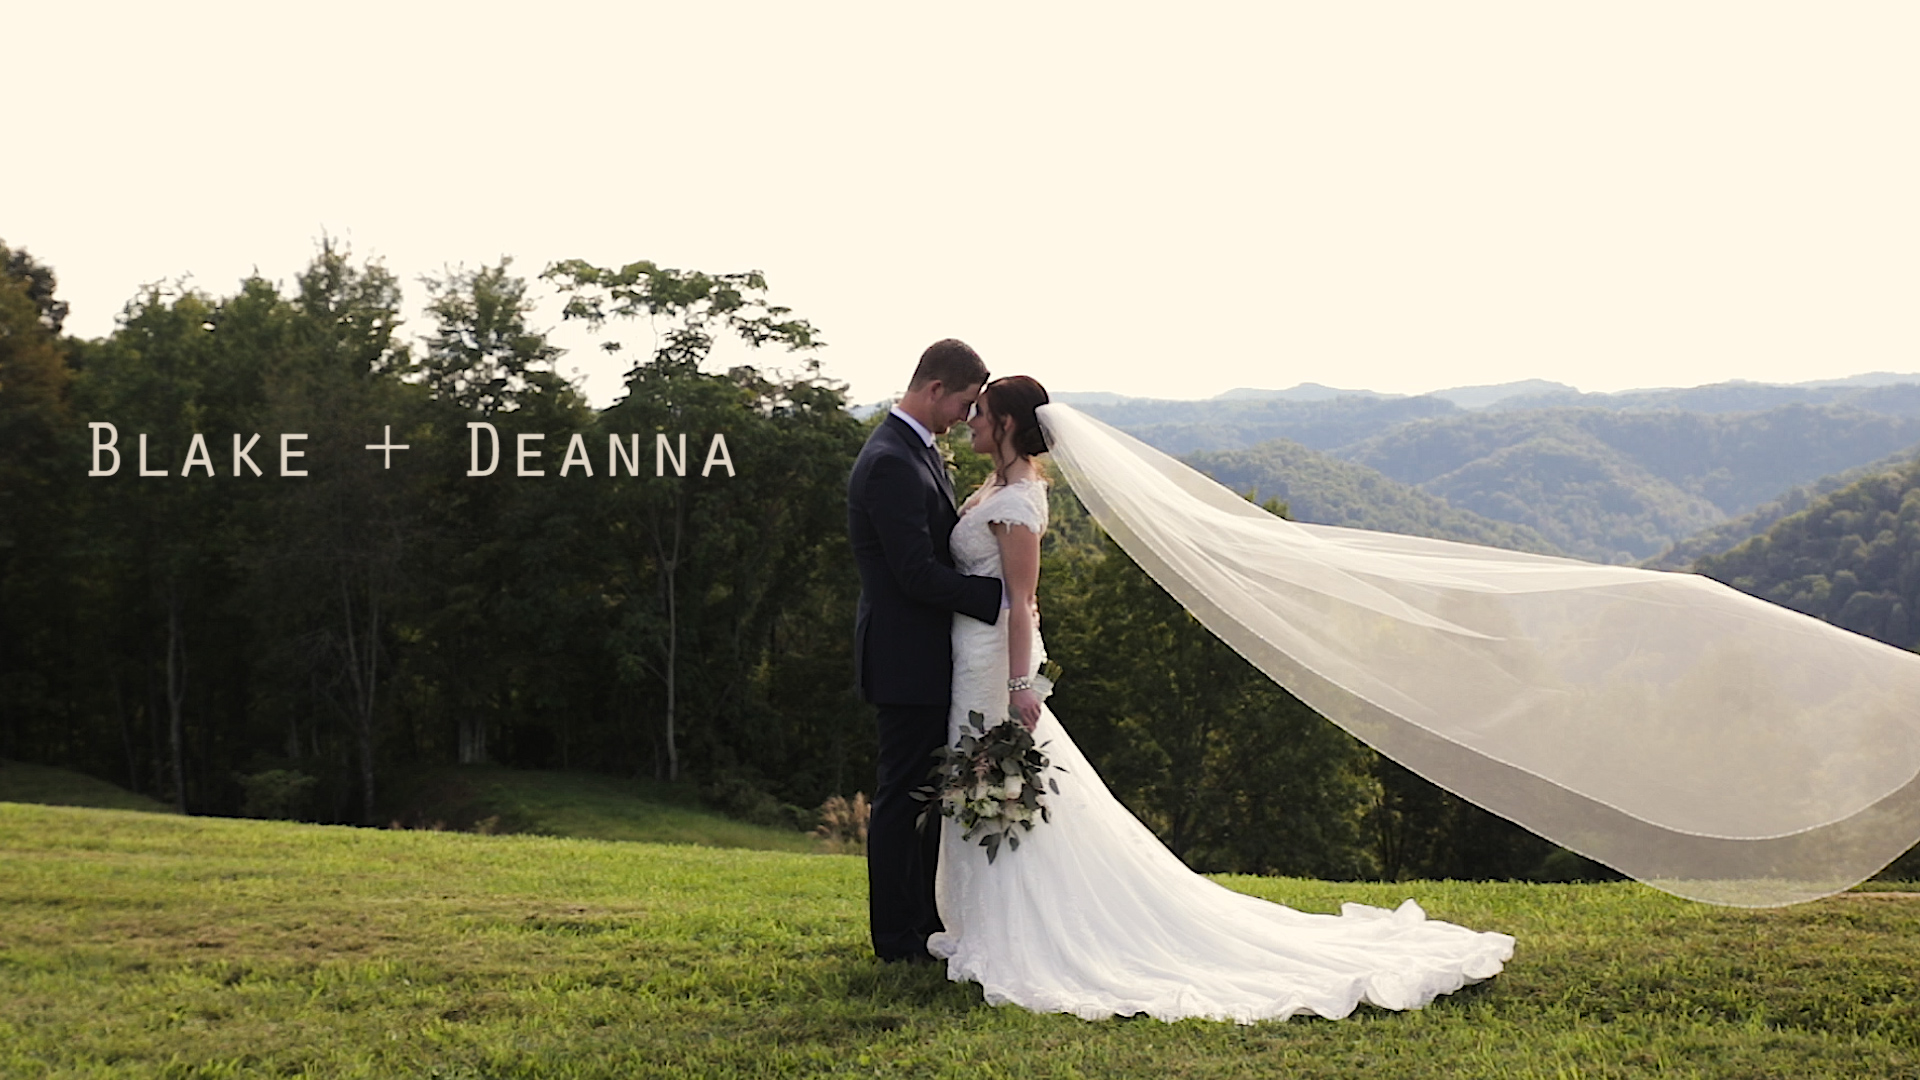 Blake + Deanna | Hindman, Kentucky | a family farm